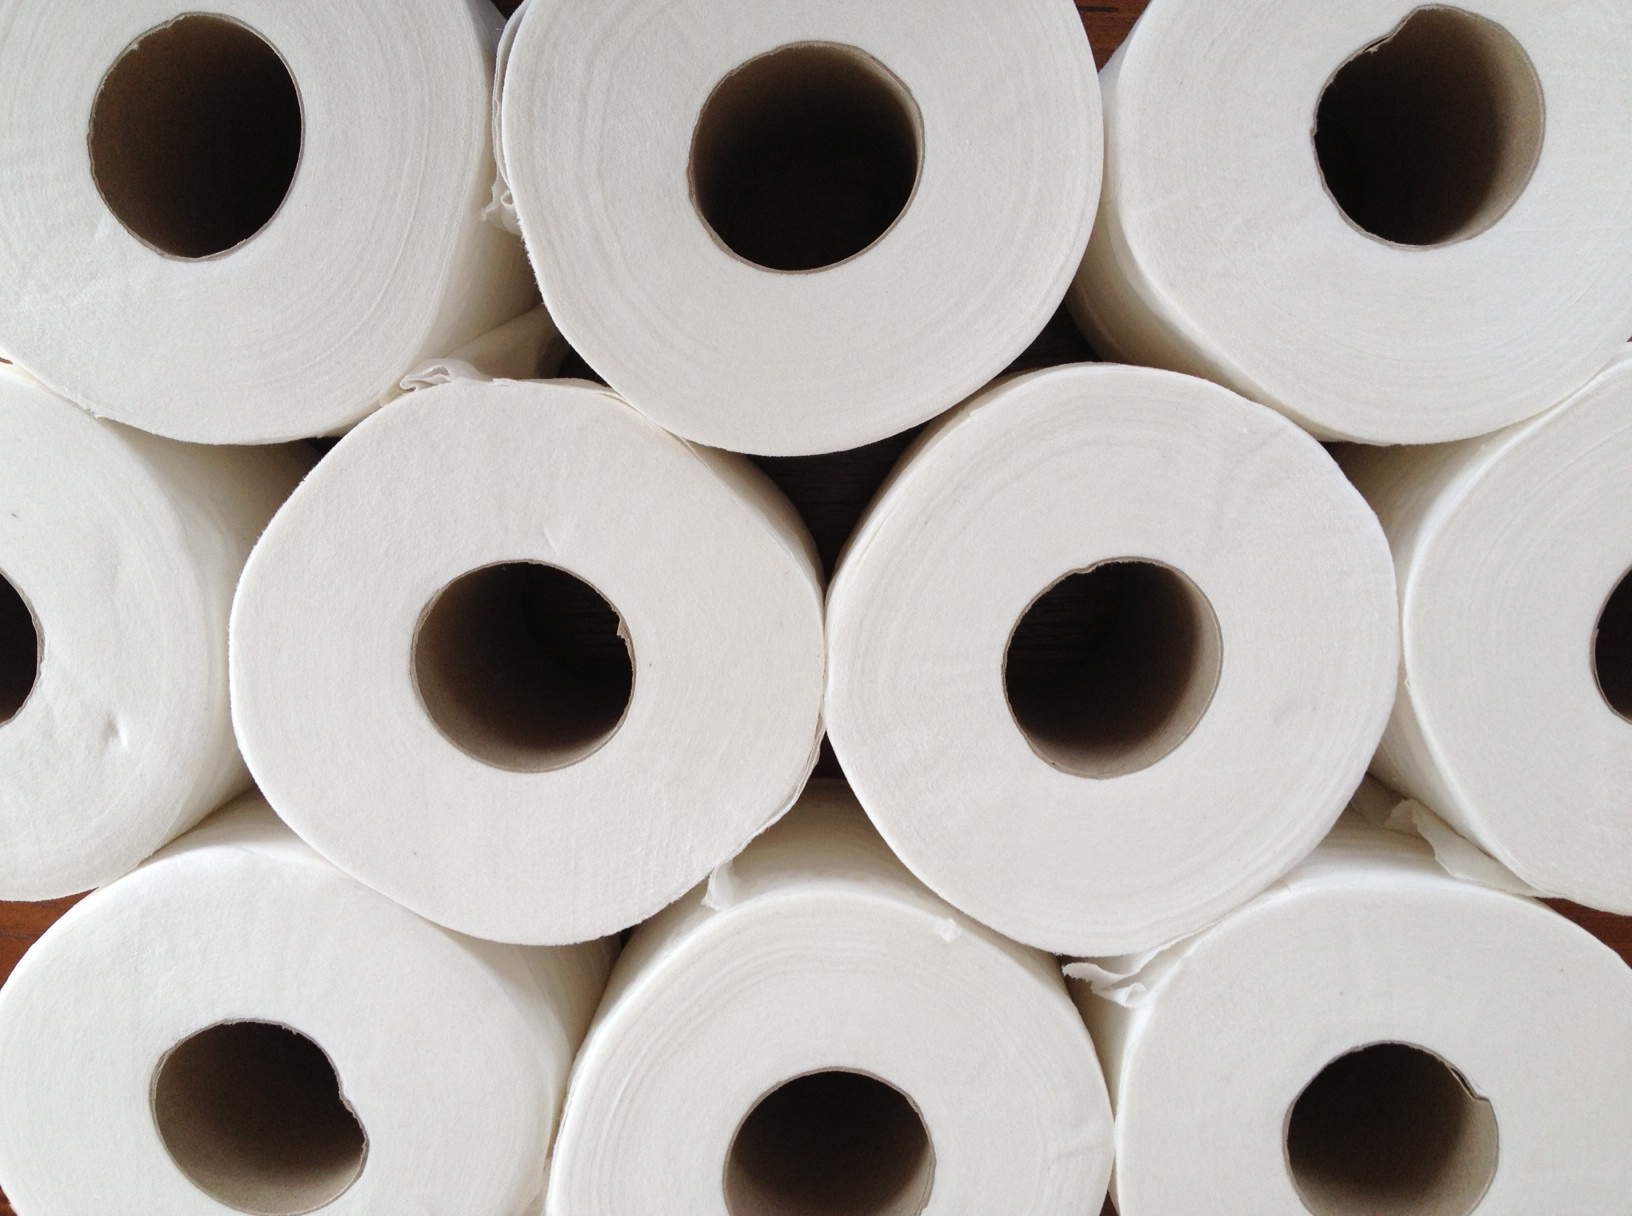 10 commandments of toilet roll   10thingsby.com